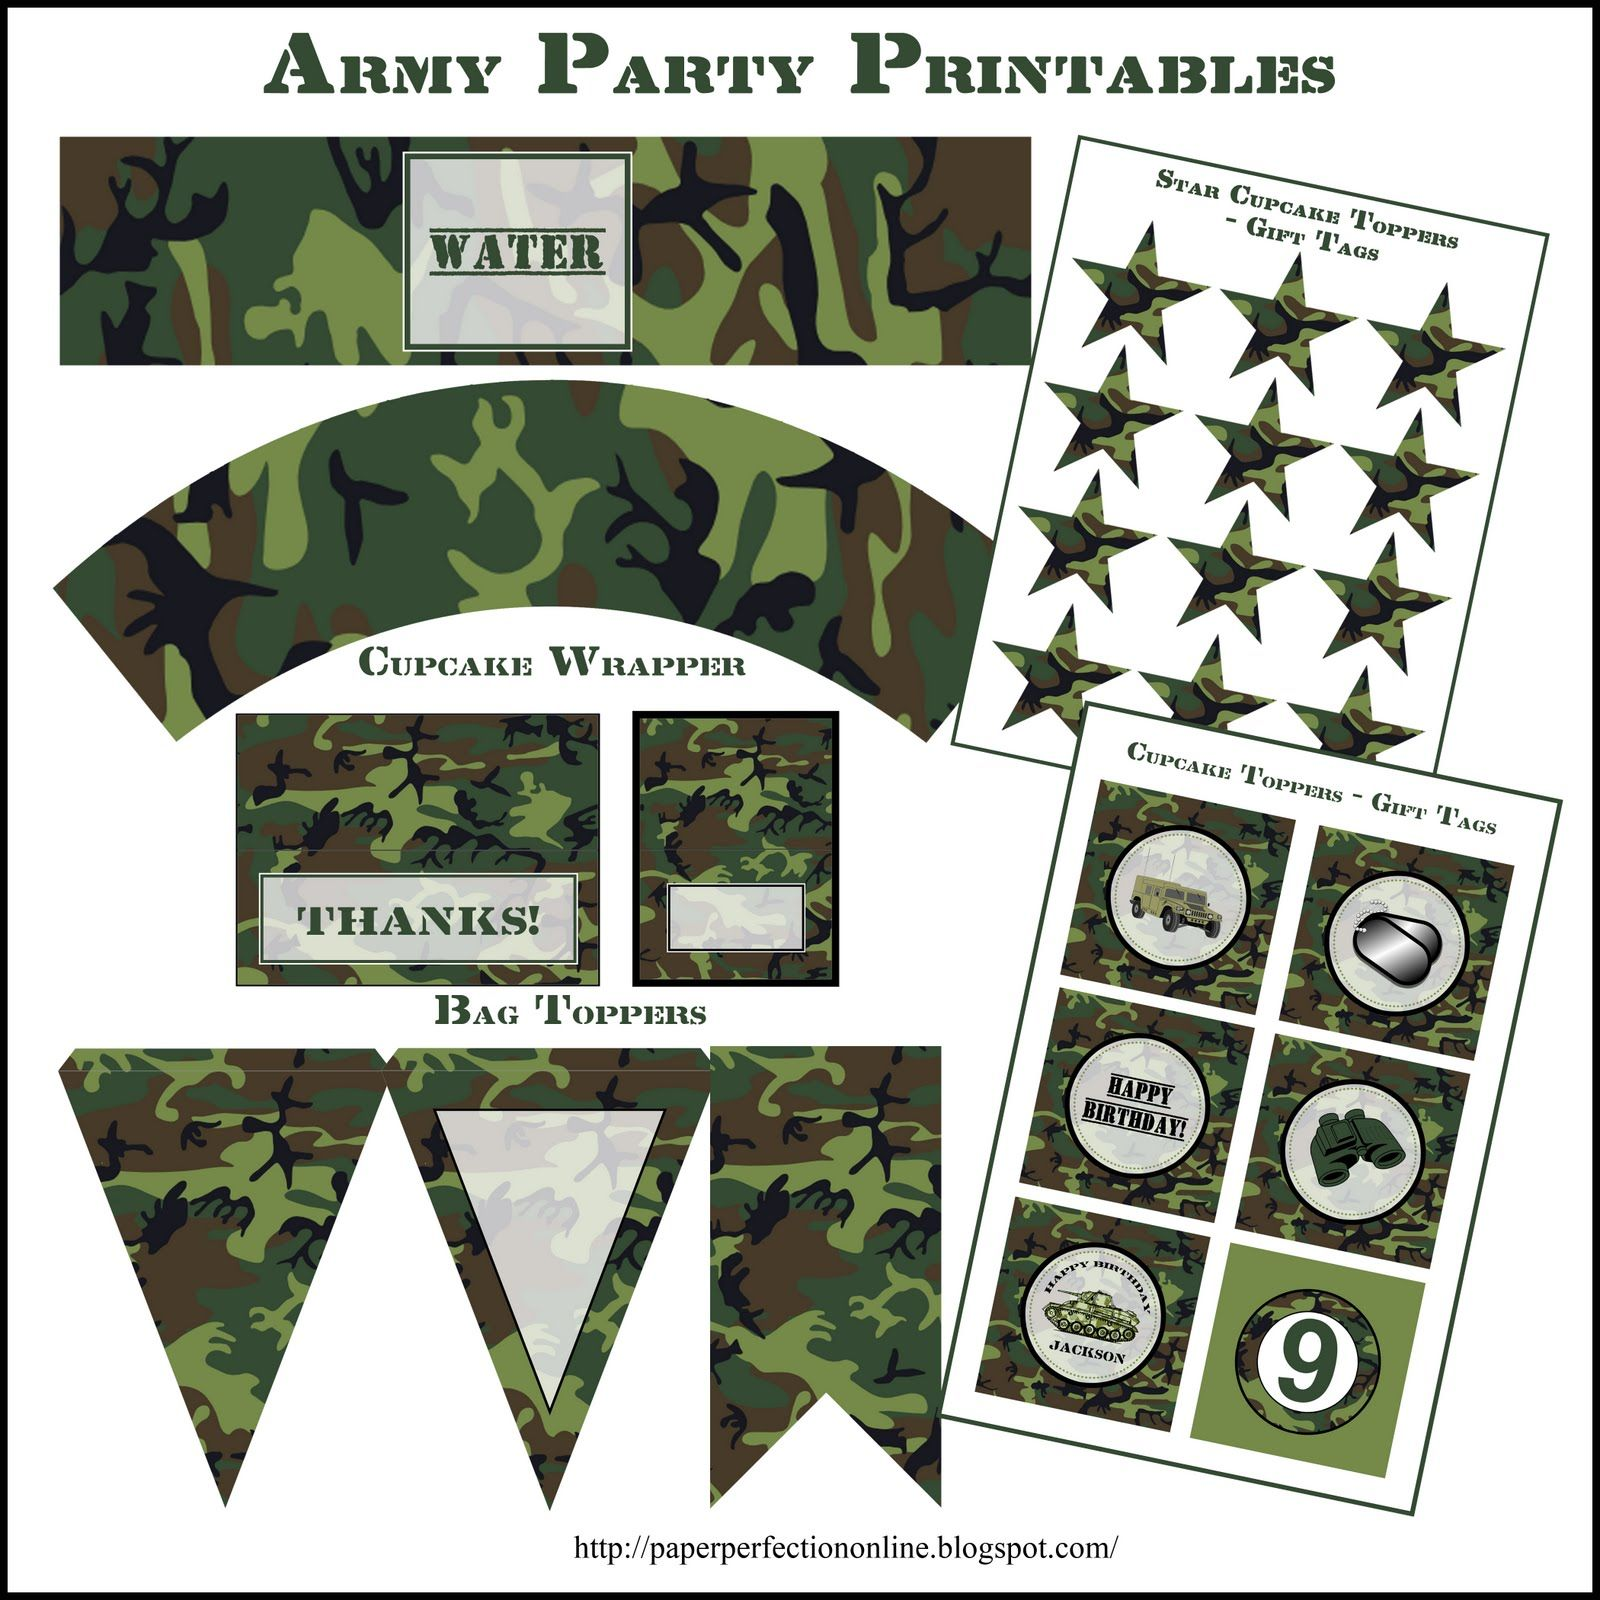 Paper Perfection Army Party Printables Army Party Party Printables Military Party